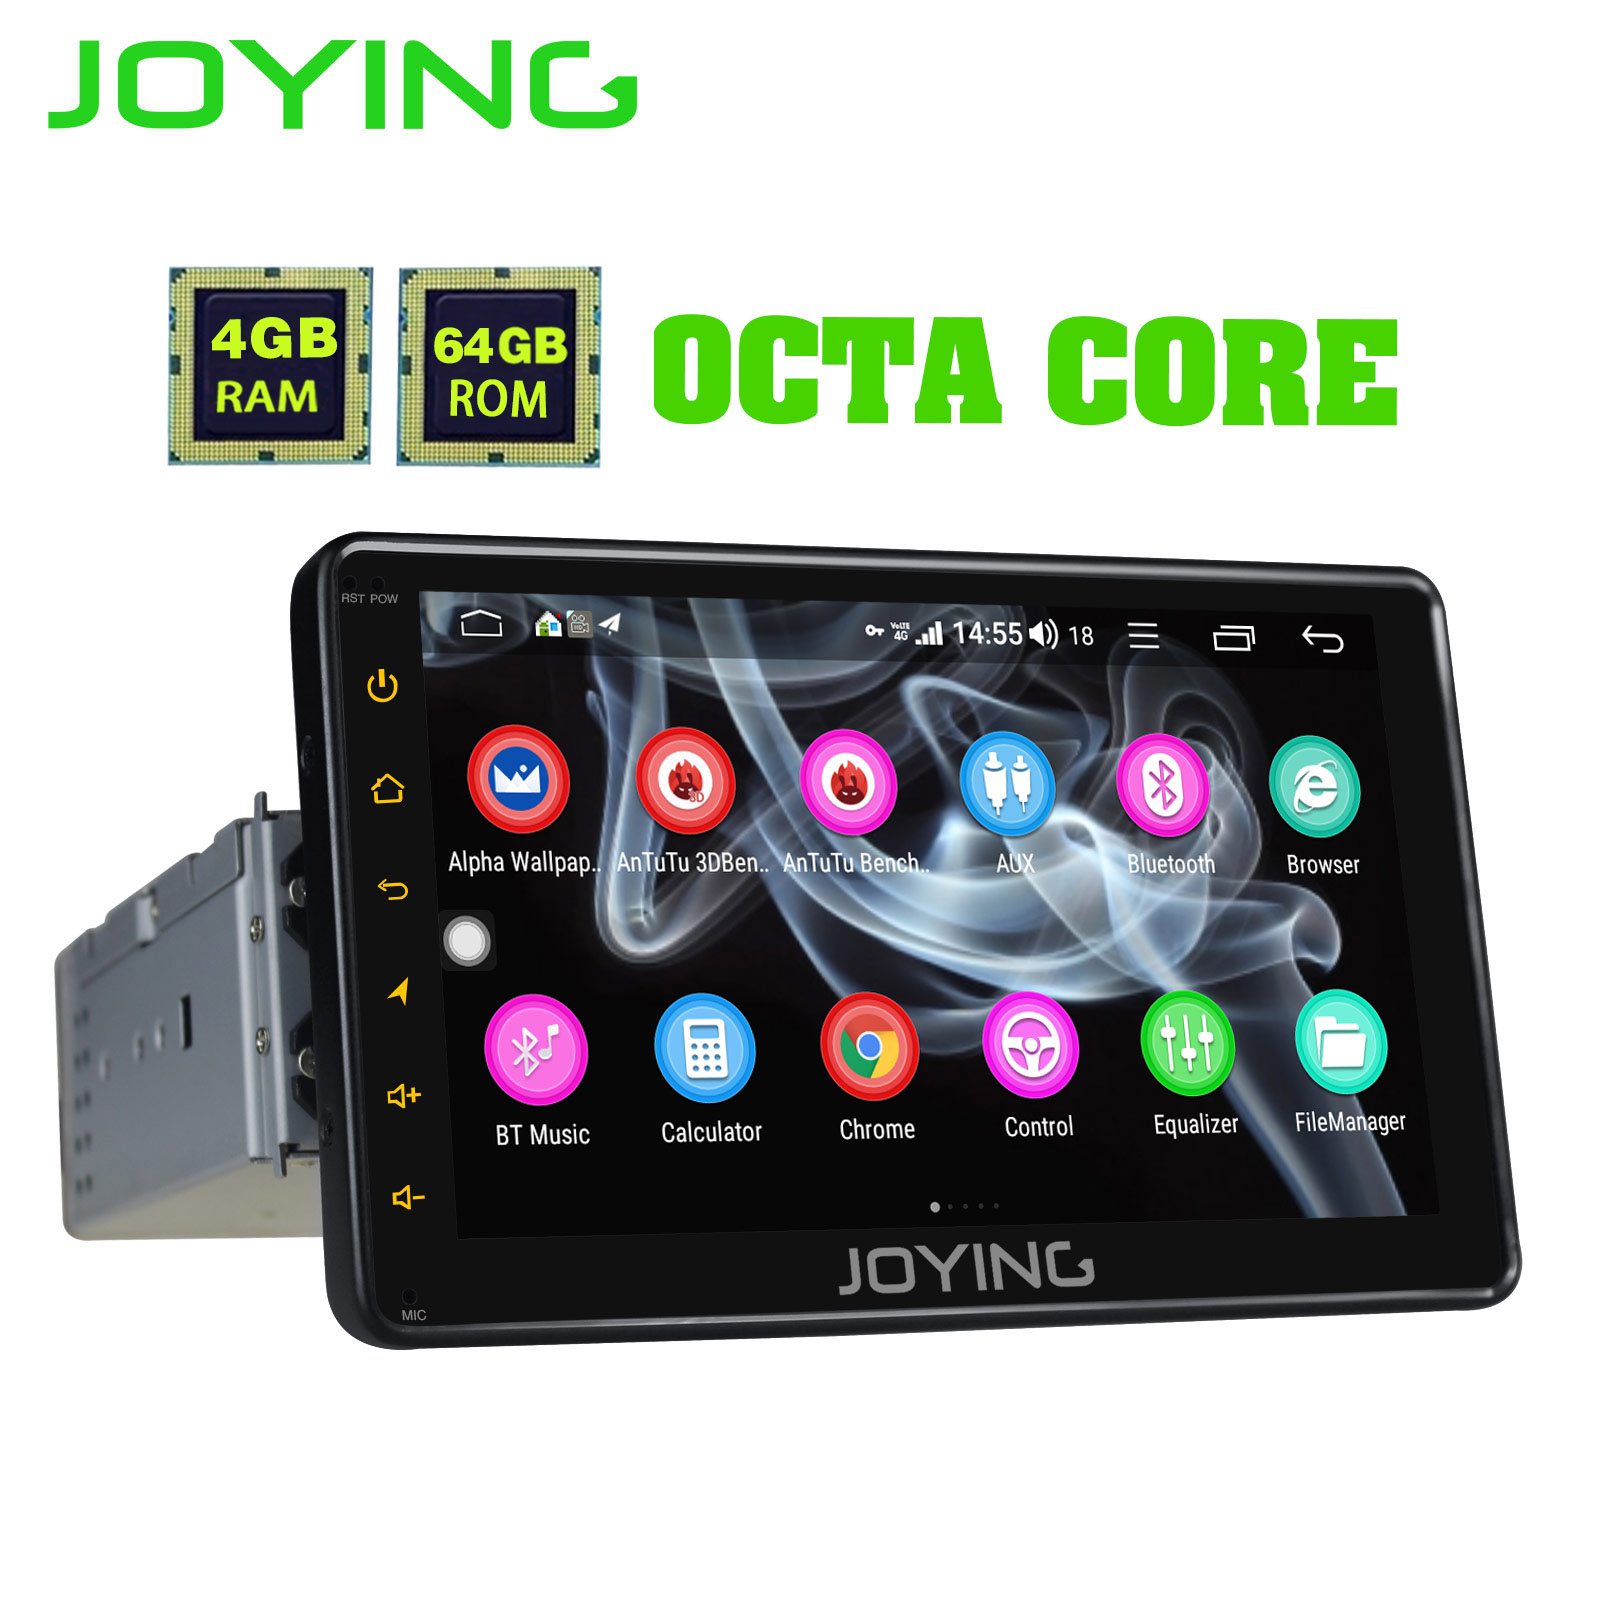 US $321 04 29% OFF|JOYING 1 DIN Android 8 1 Universal 7